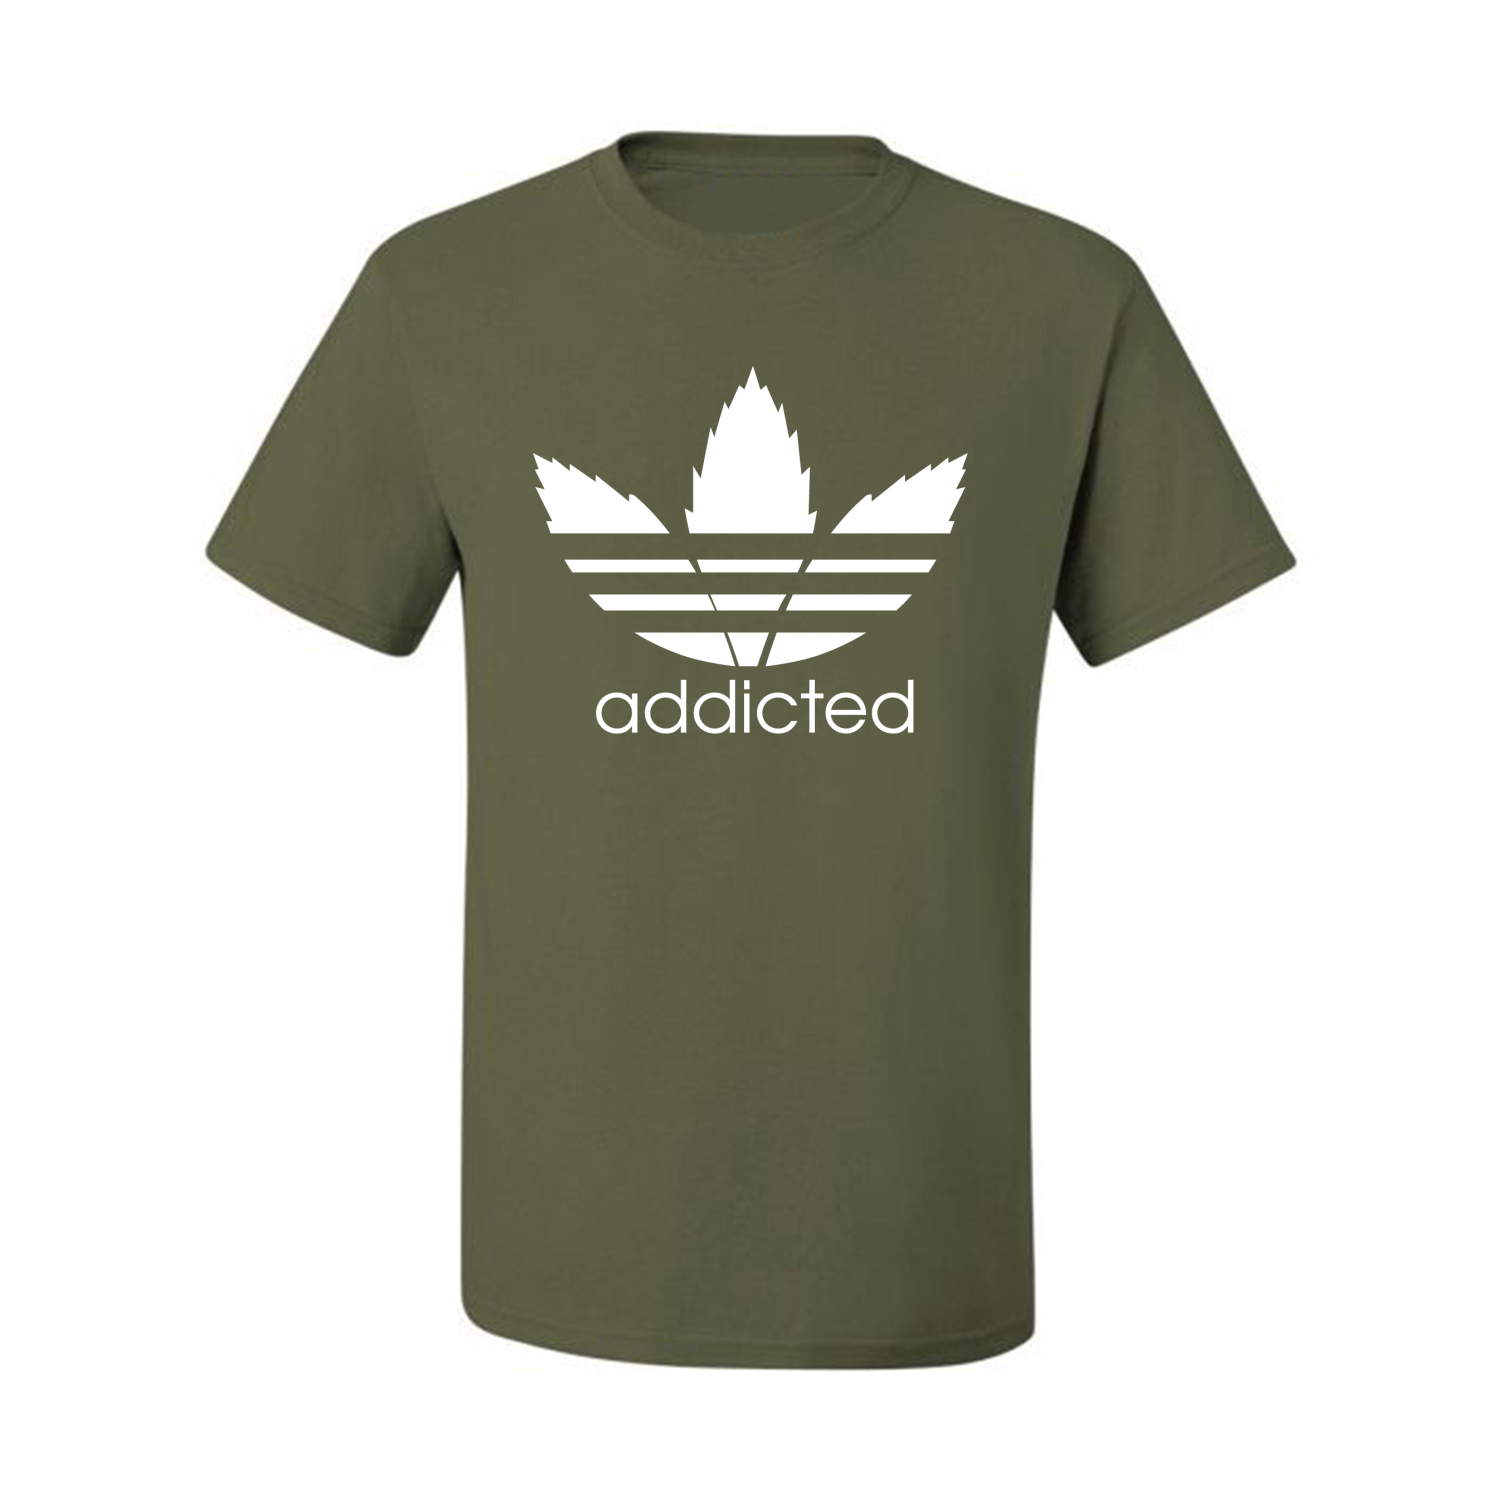 Addicted-White-Pot-Leaf-Mens-Weed-T-Shirt-Graphic-Parody-Tee thumbnail 24